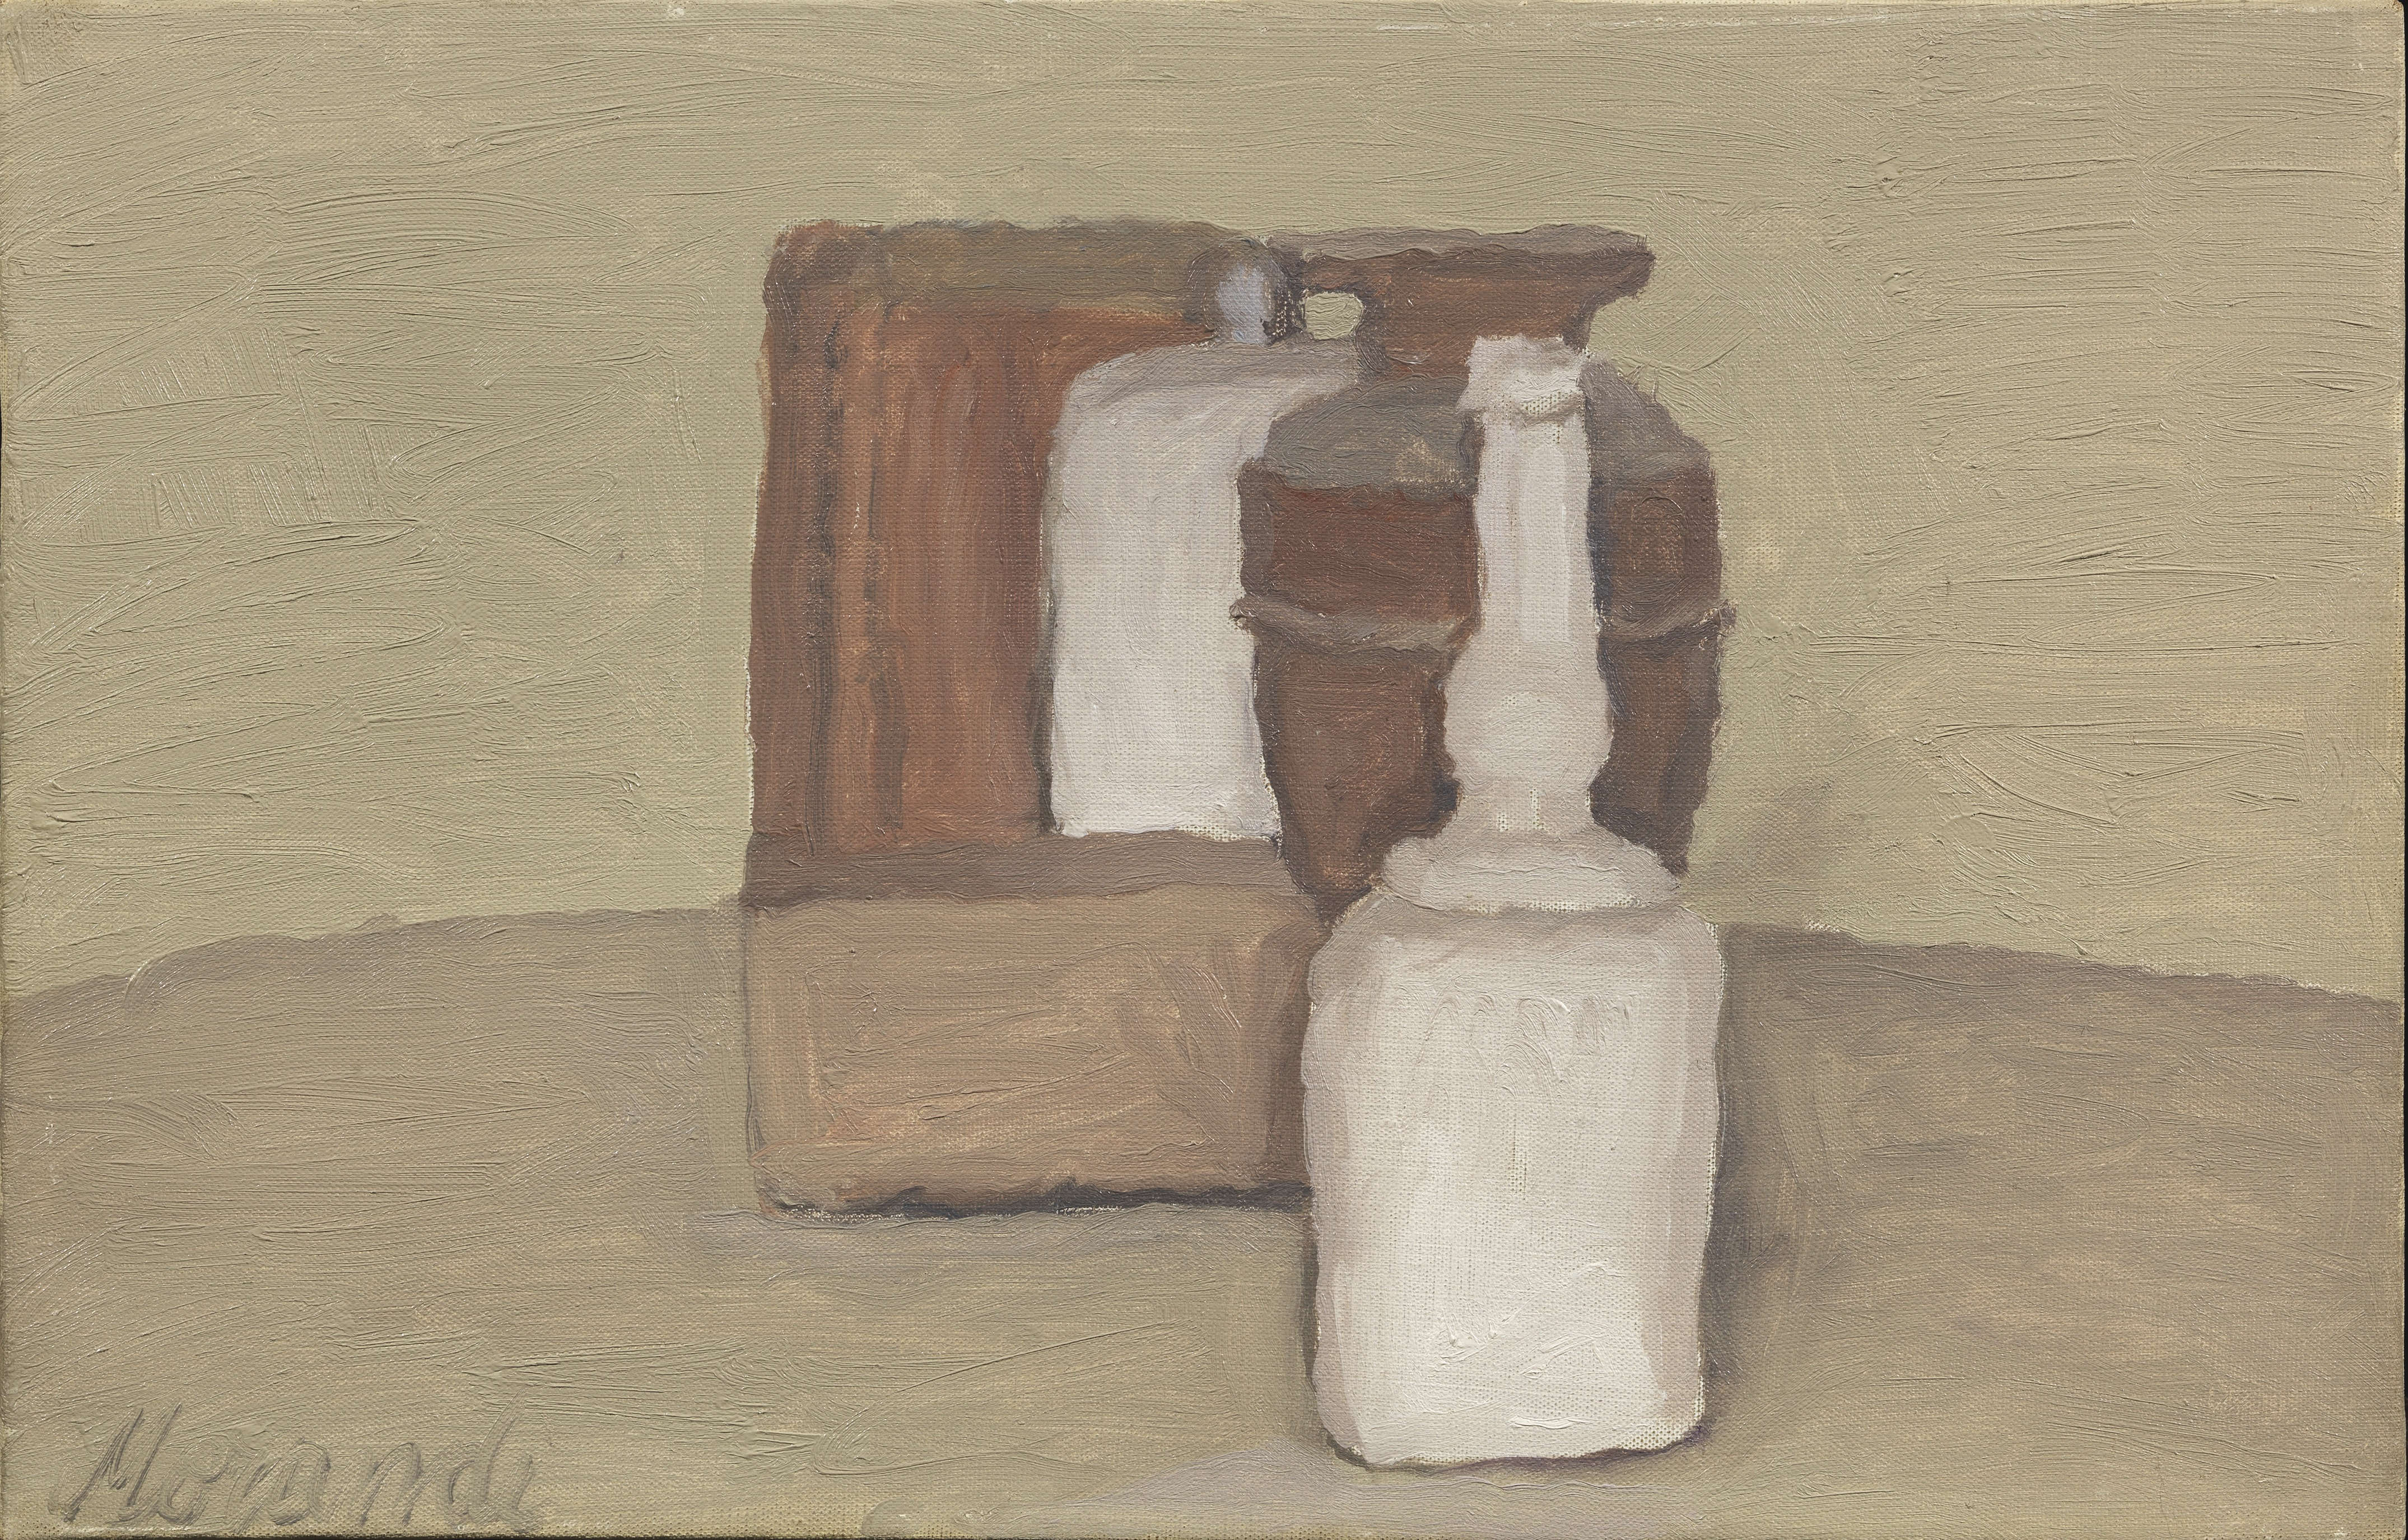 Giorgio Morandi, Natura morta, 1955, oil on canvas, 24x37 cm